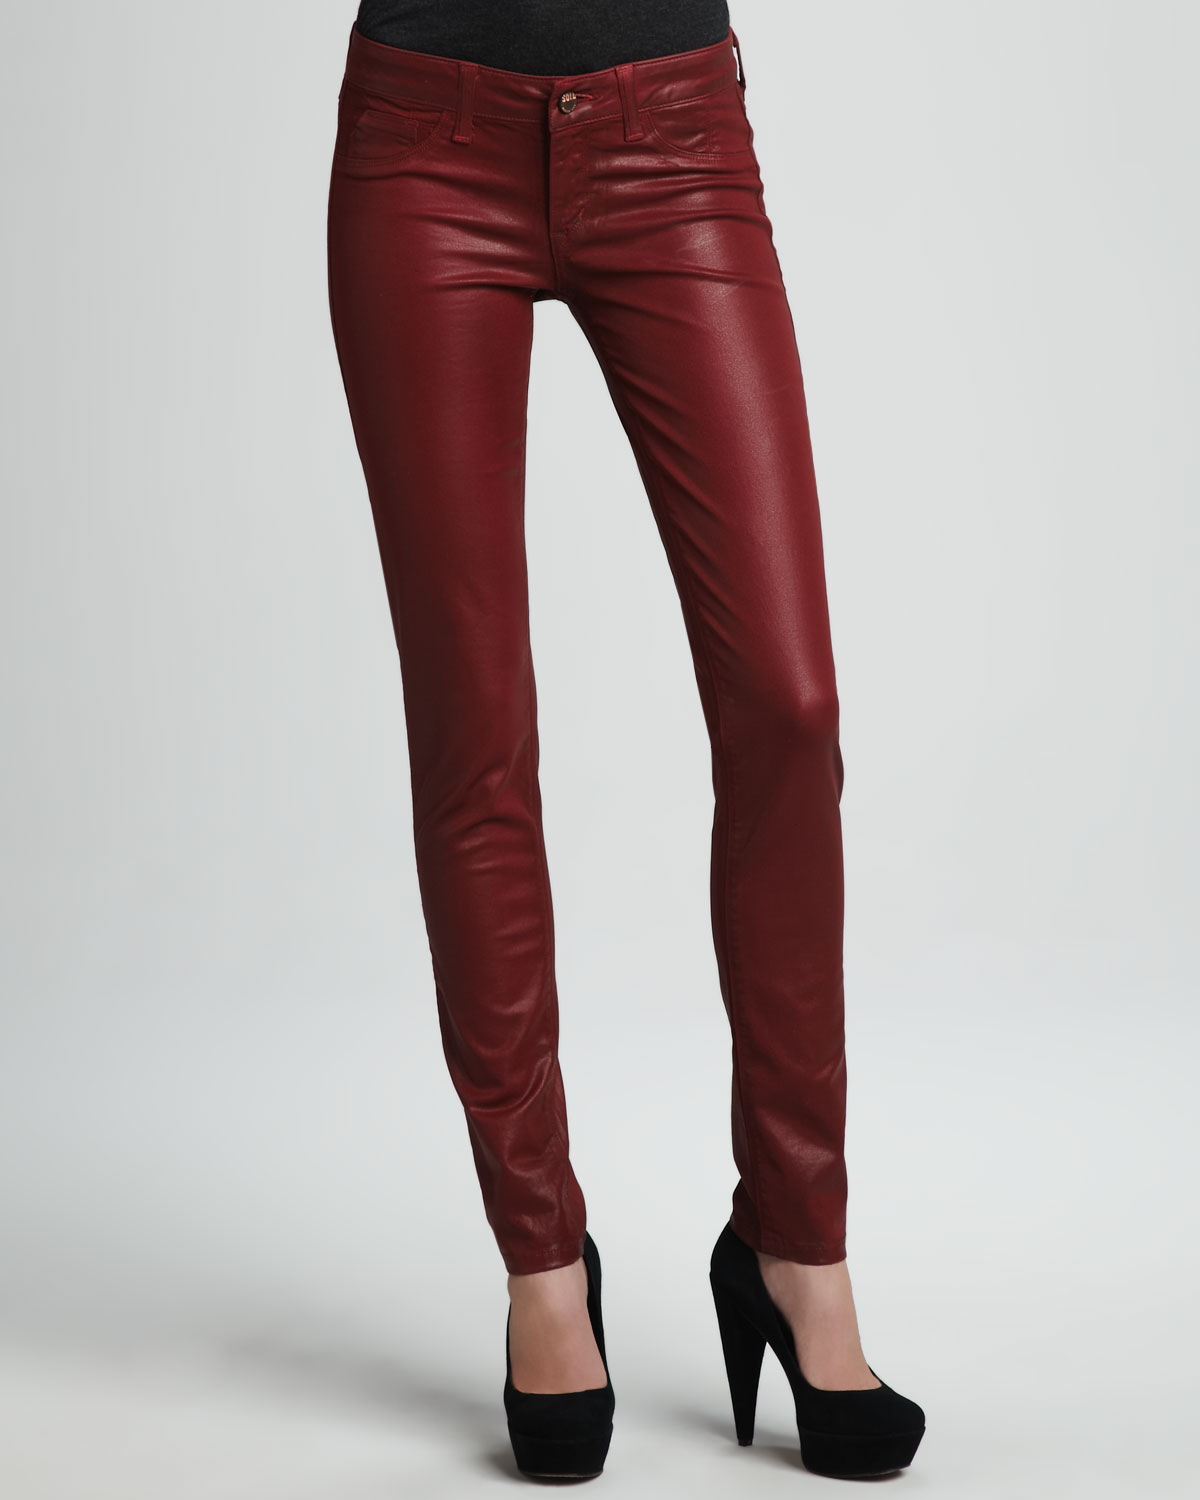 Sold denim Coated Skinny Jeans in Red | Lyst